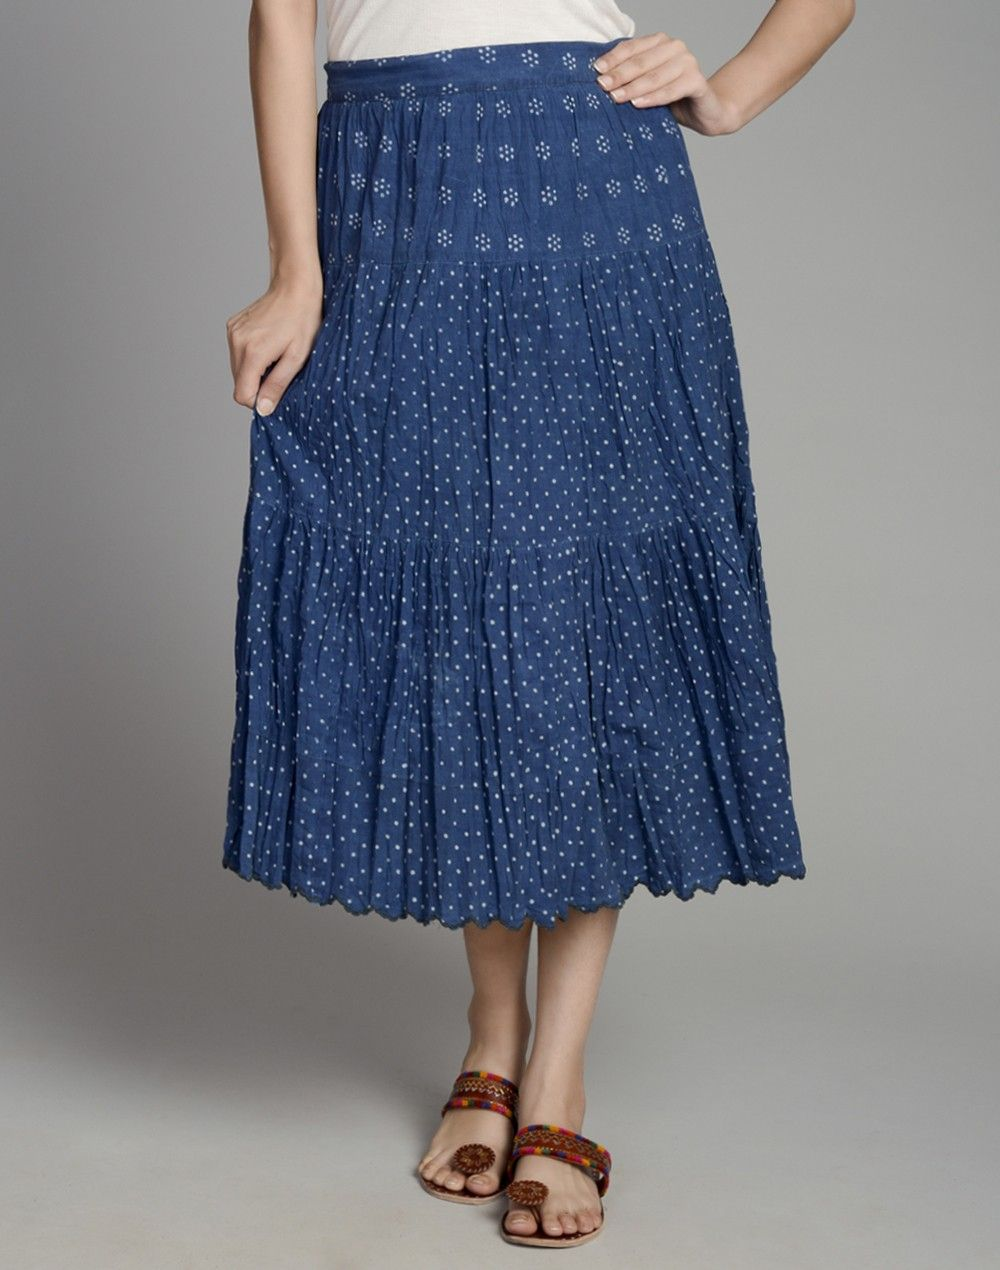 This trendy skirt is perfect for those who like their